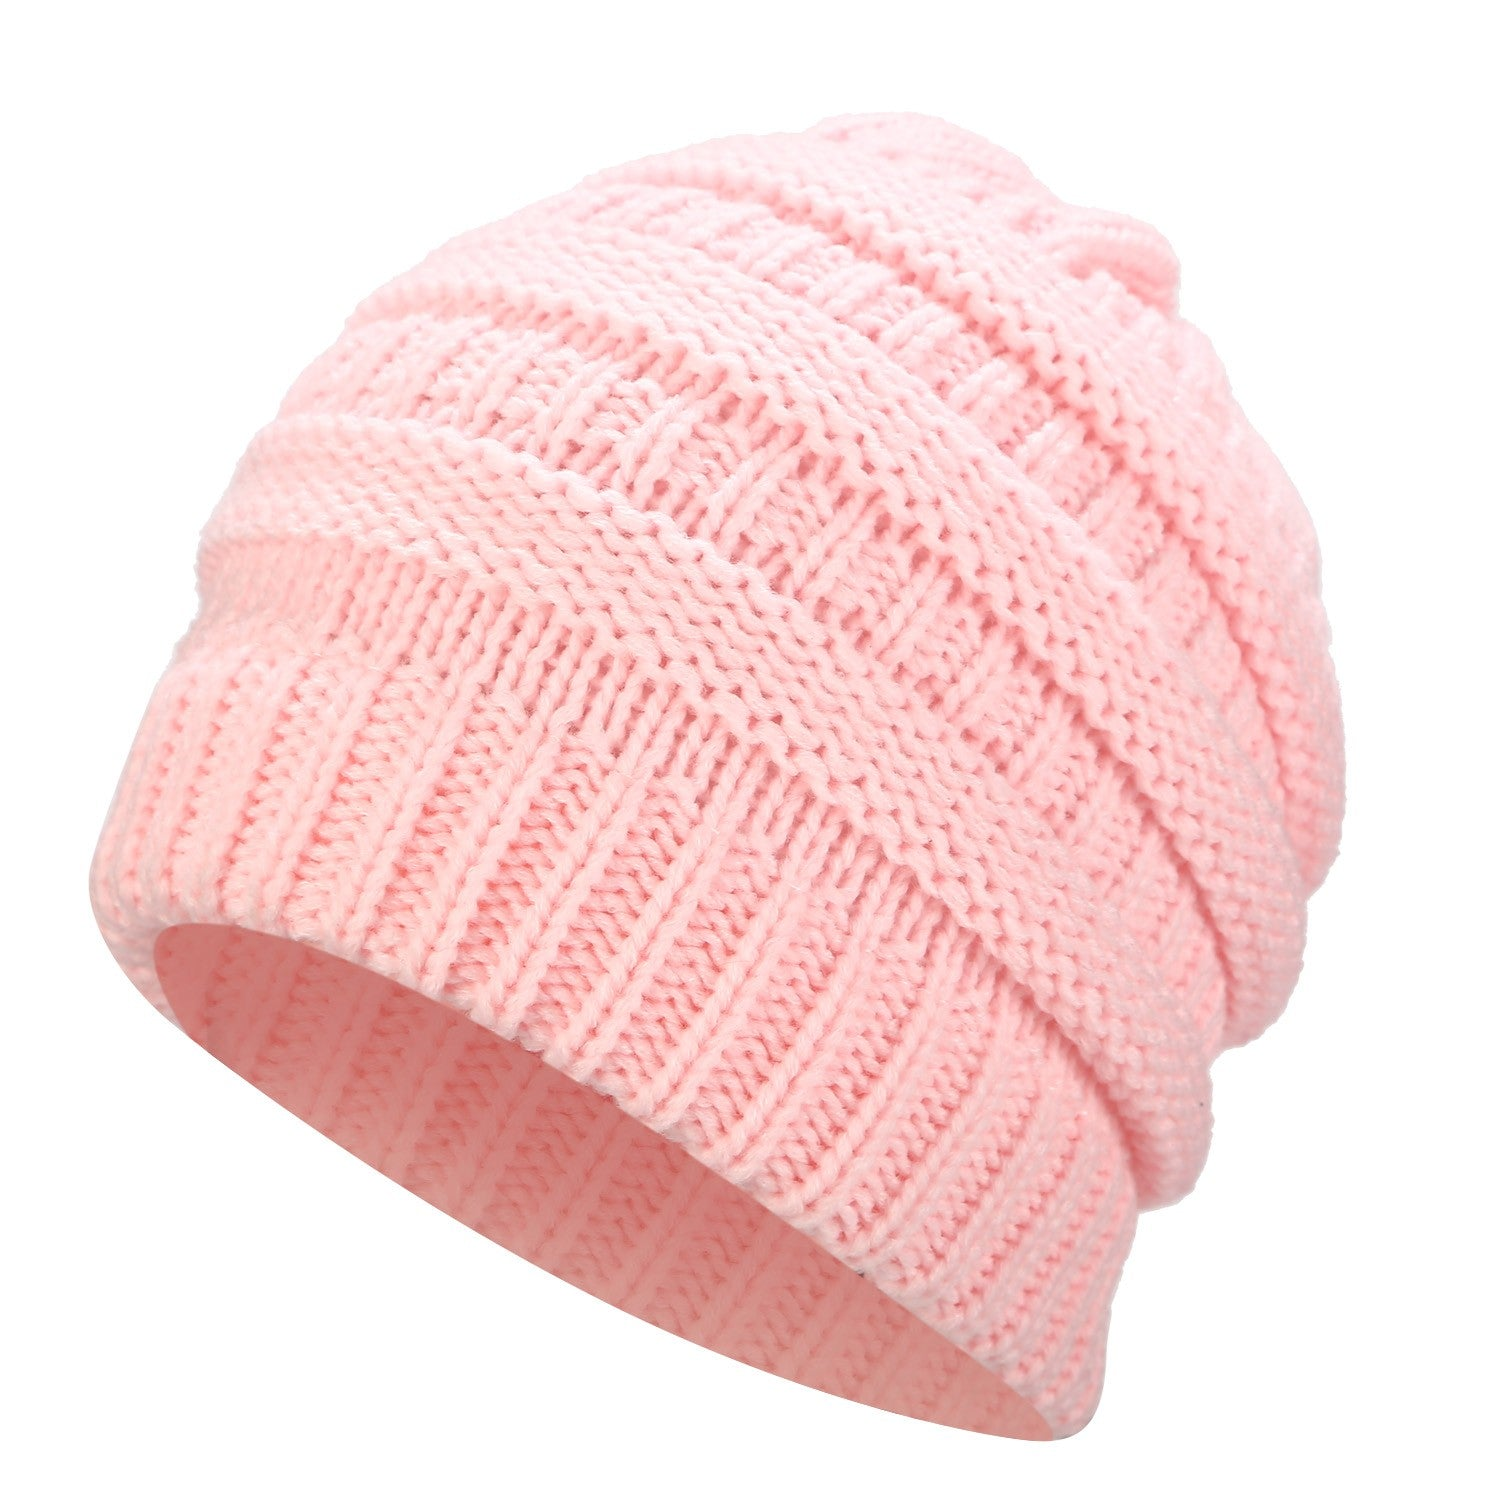 26873d6b2af87 Ponytail Beanie Hat Winter Skullies Beanies Warm Caps Female Knitted ...